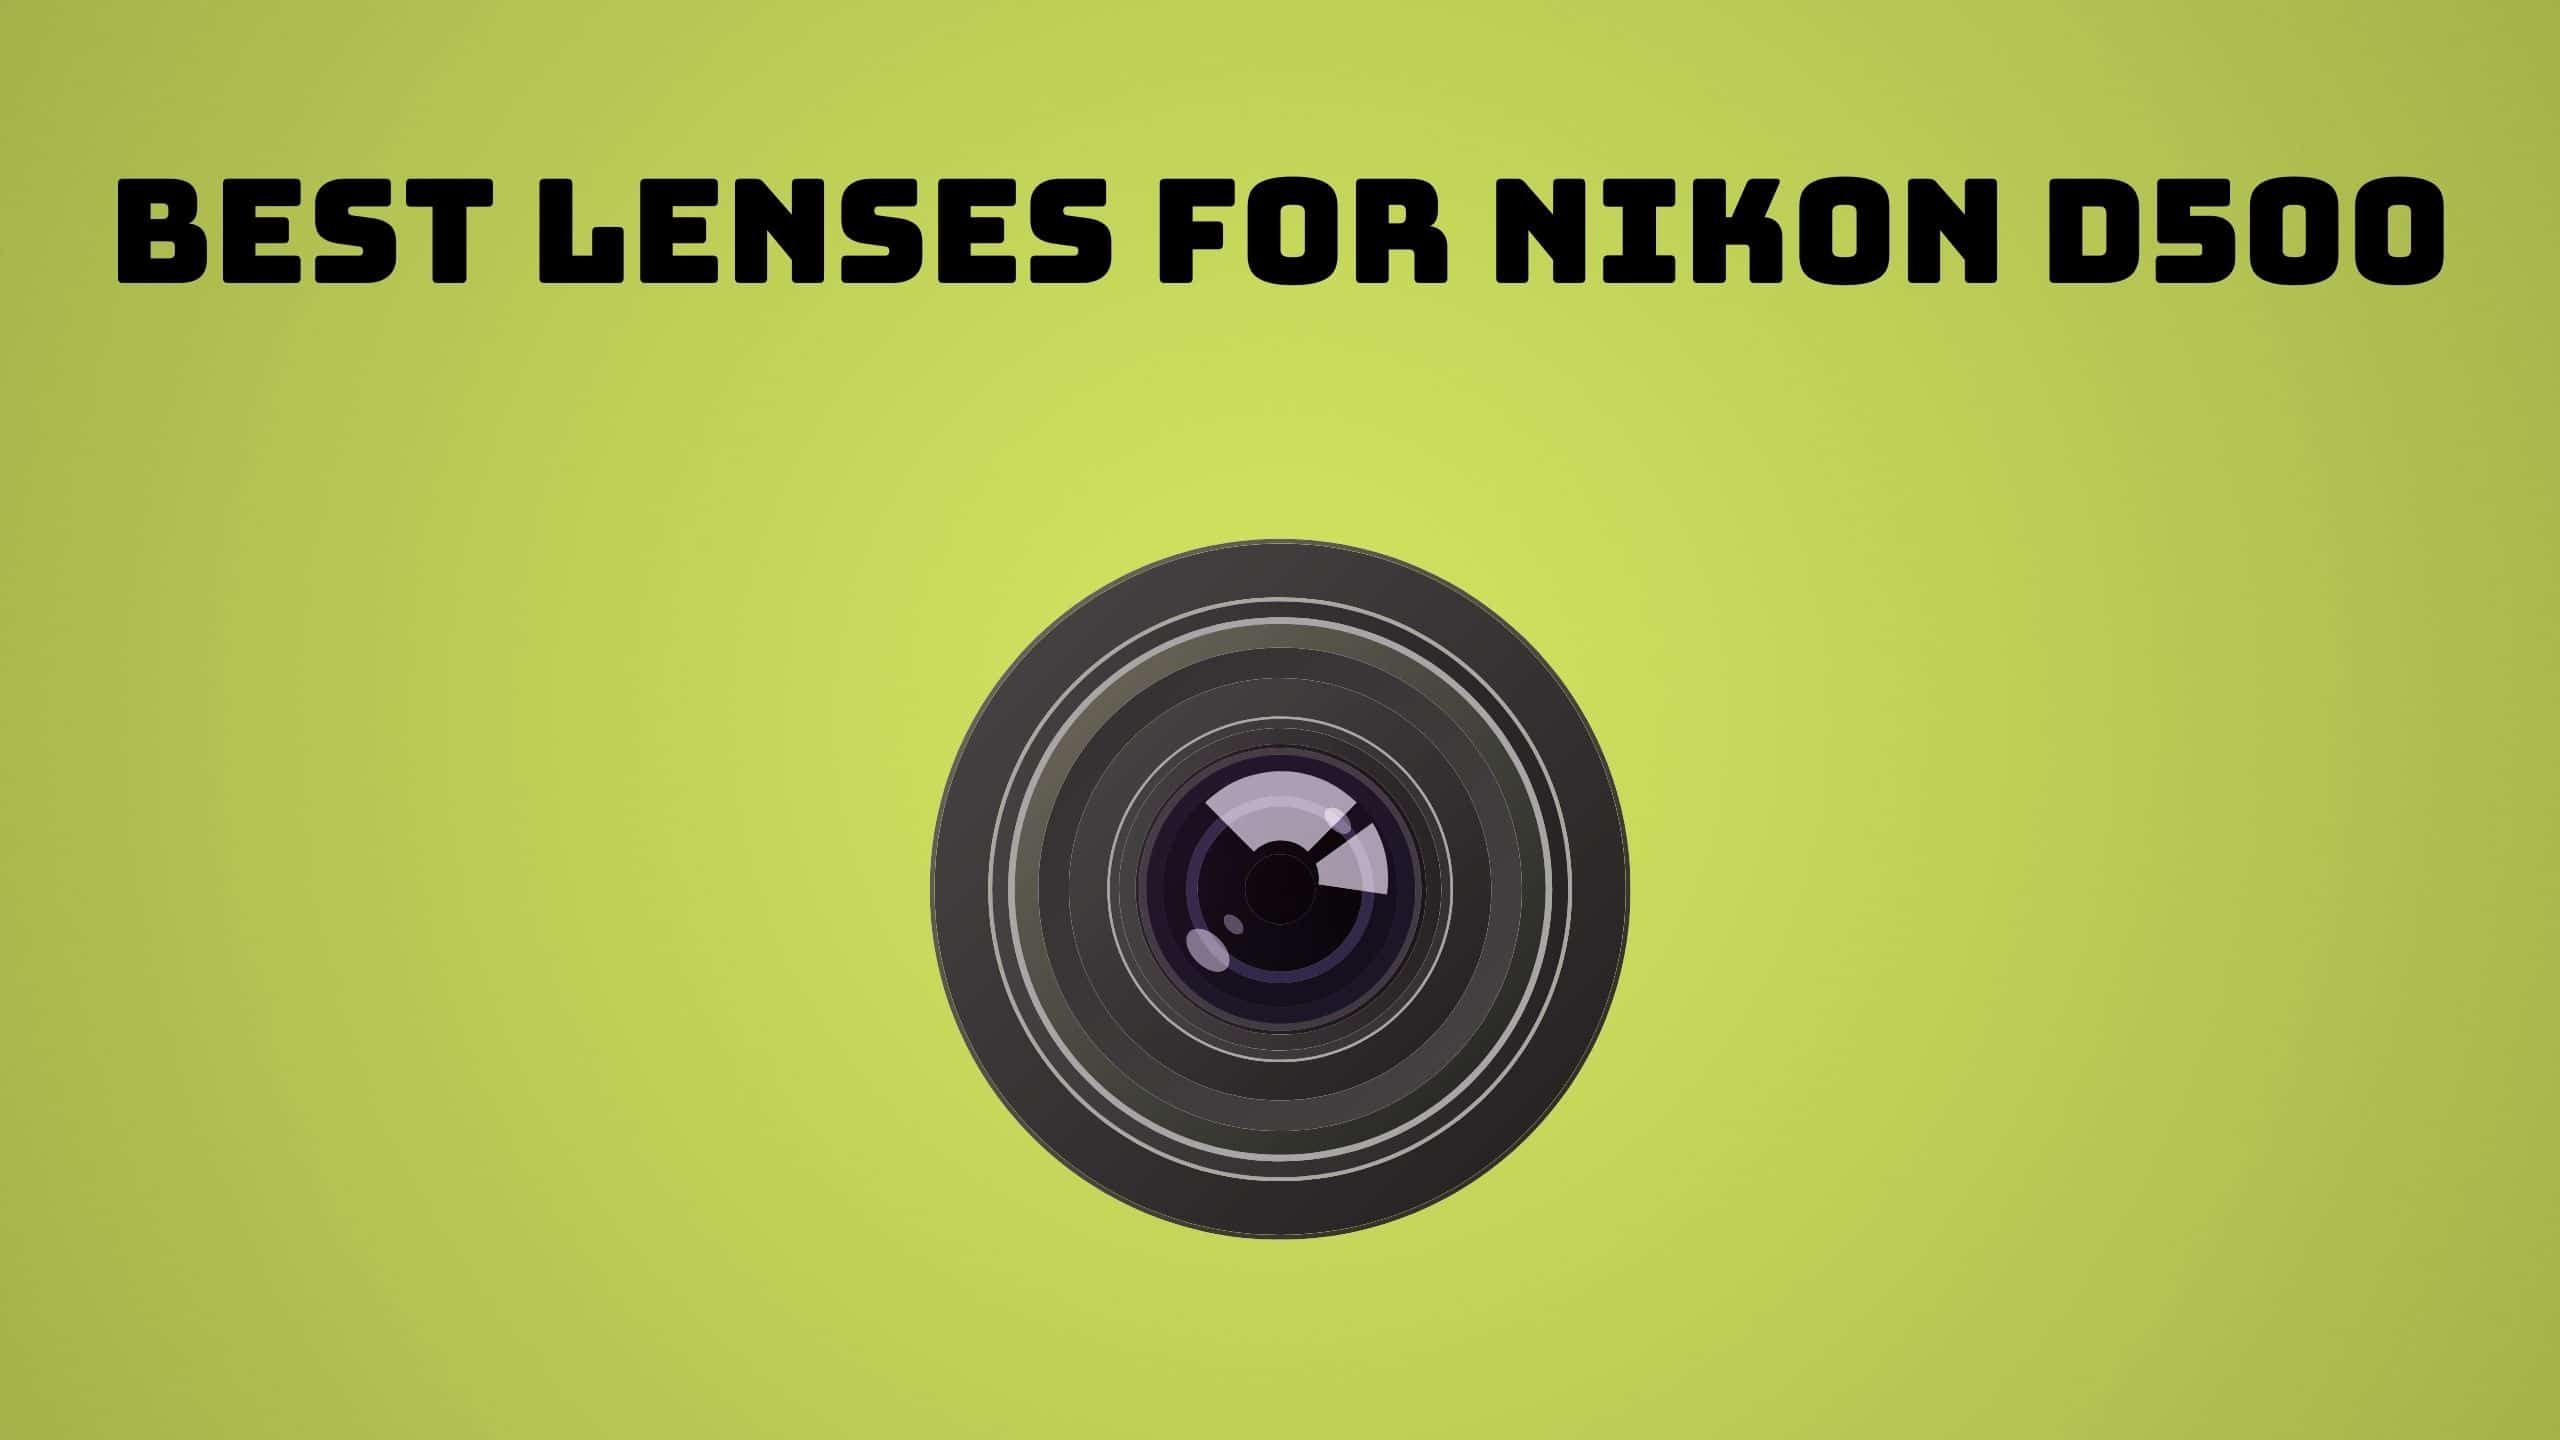 Best Lenses for Nikon D500